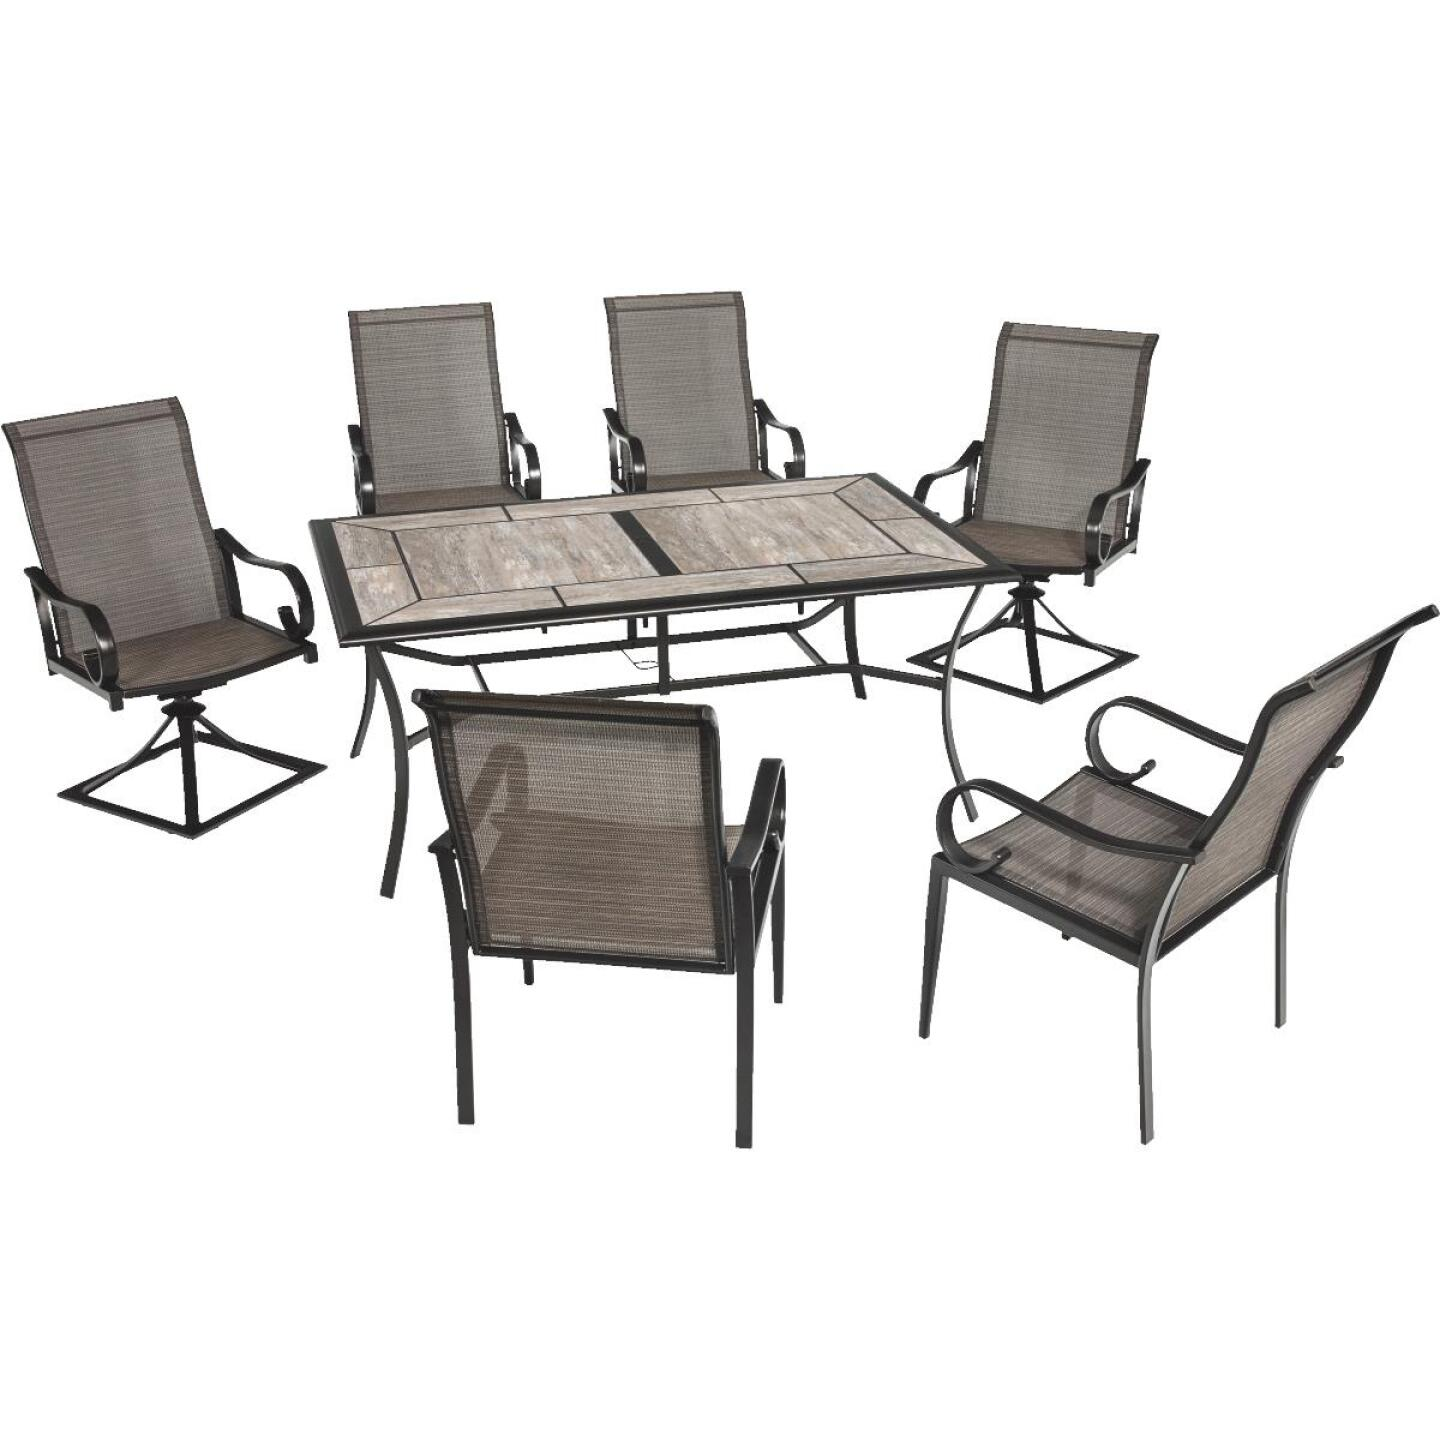 Outdoor Expressions Berkshire 7-Piece Dining Set Image 21